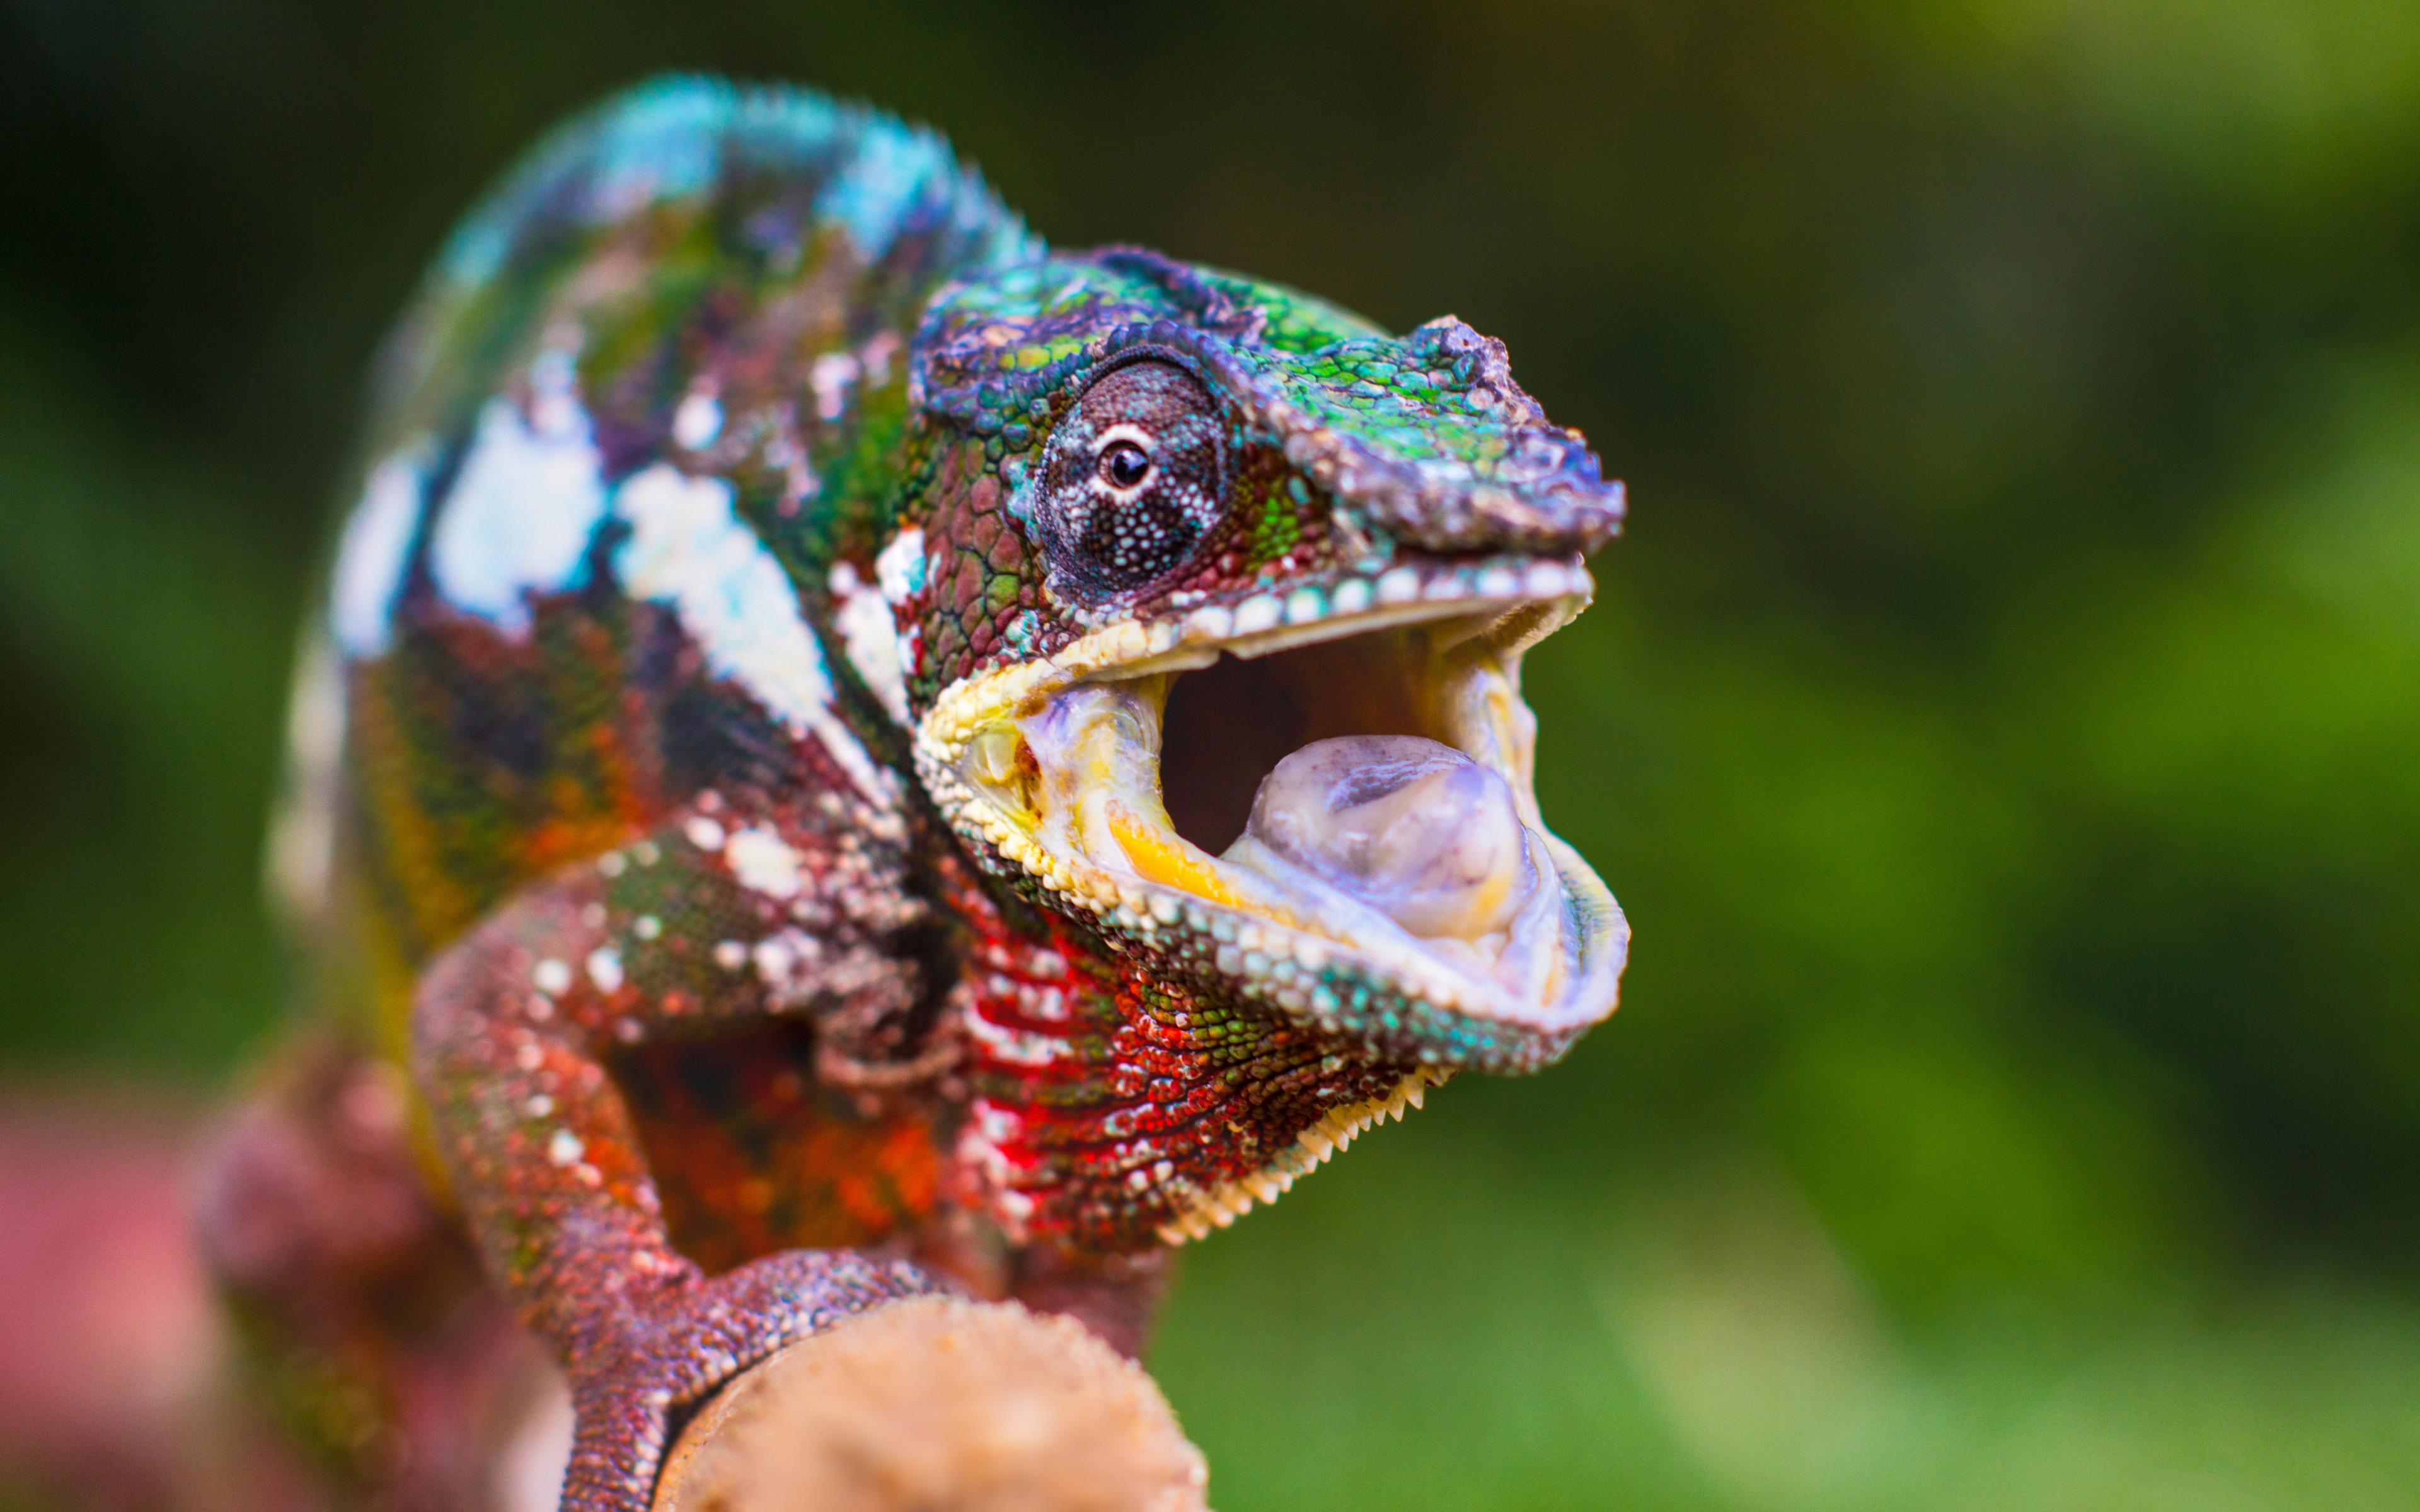 colorful chameleon widescreen wallpaper 49117